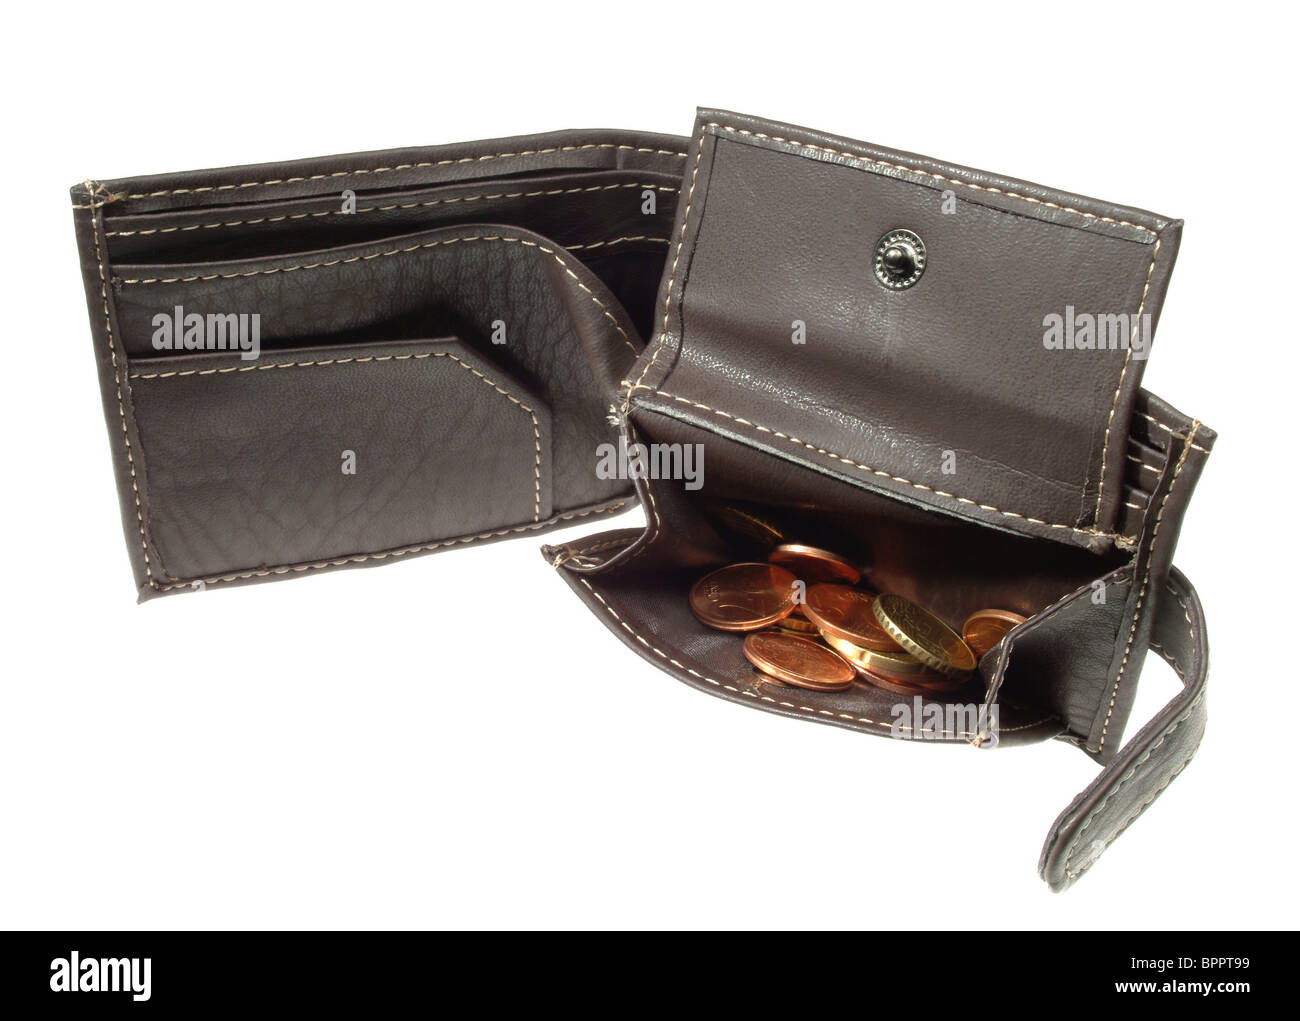 A wallet with few Euro cents - Stock Image